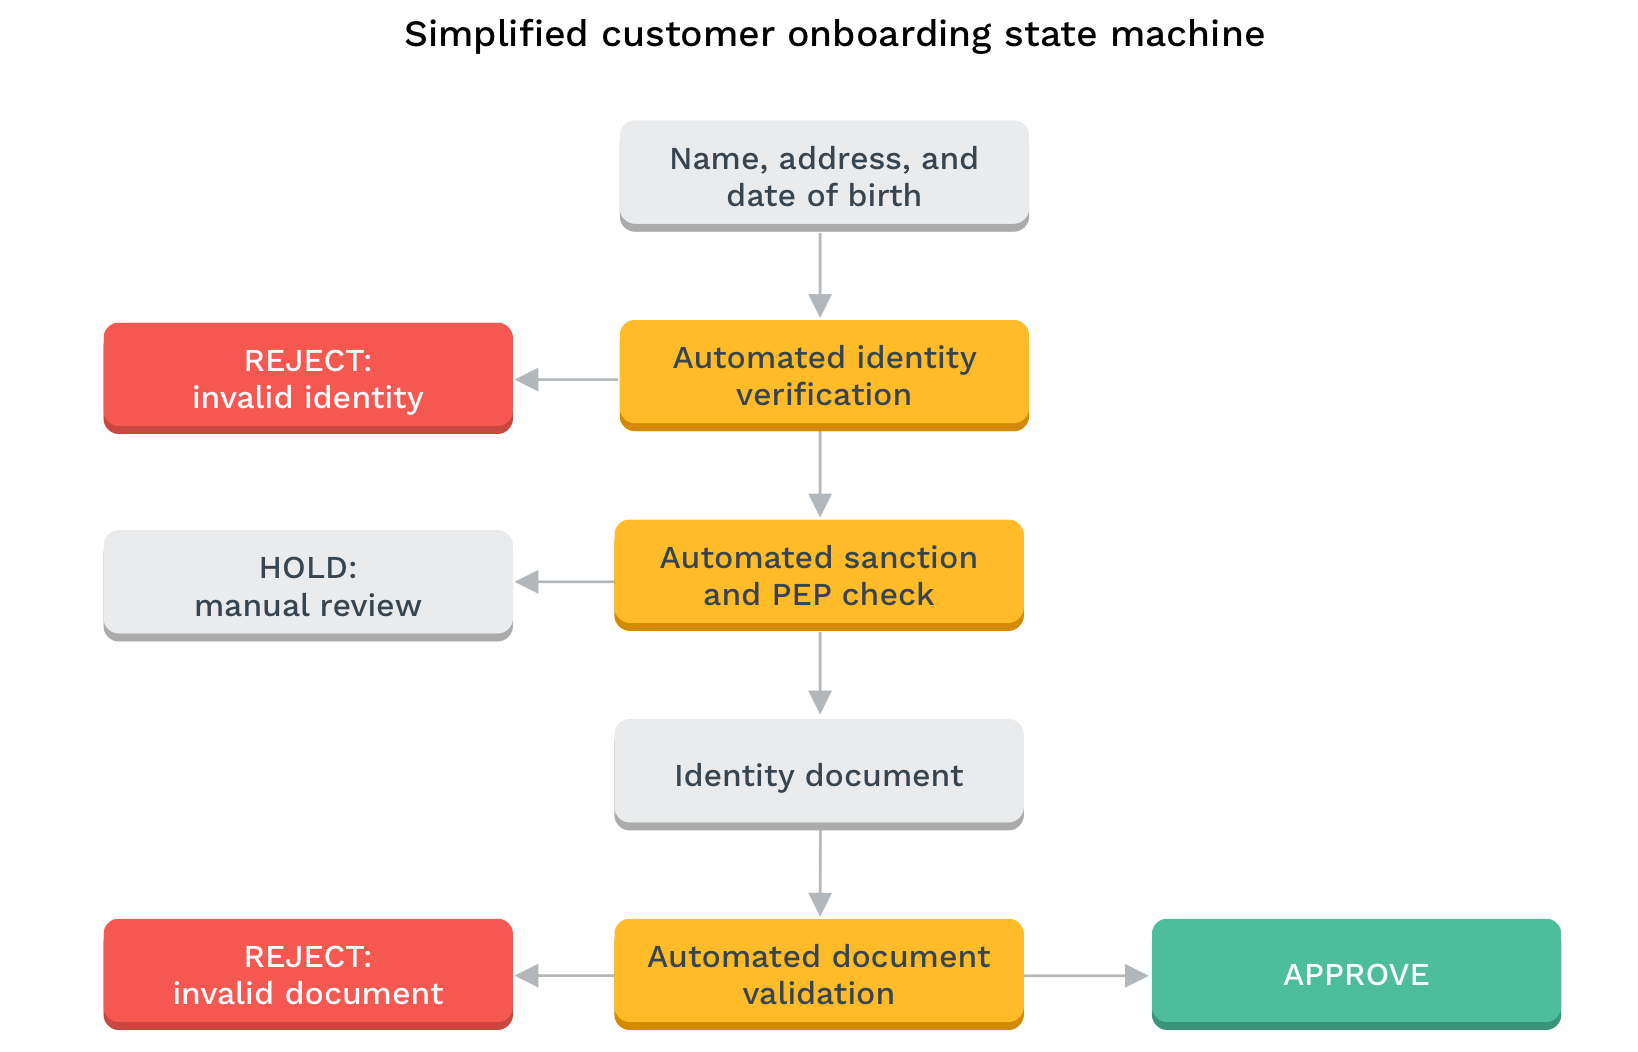 Simplified customer onboarding state machine diagram